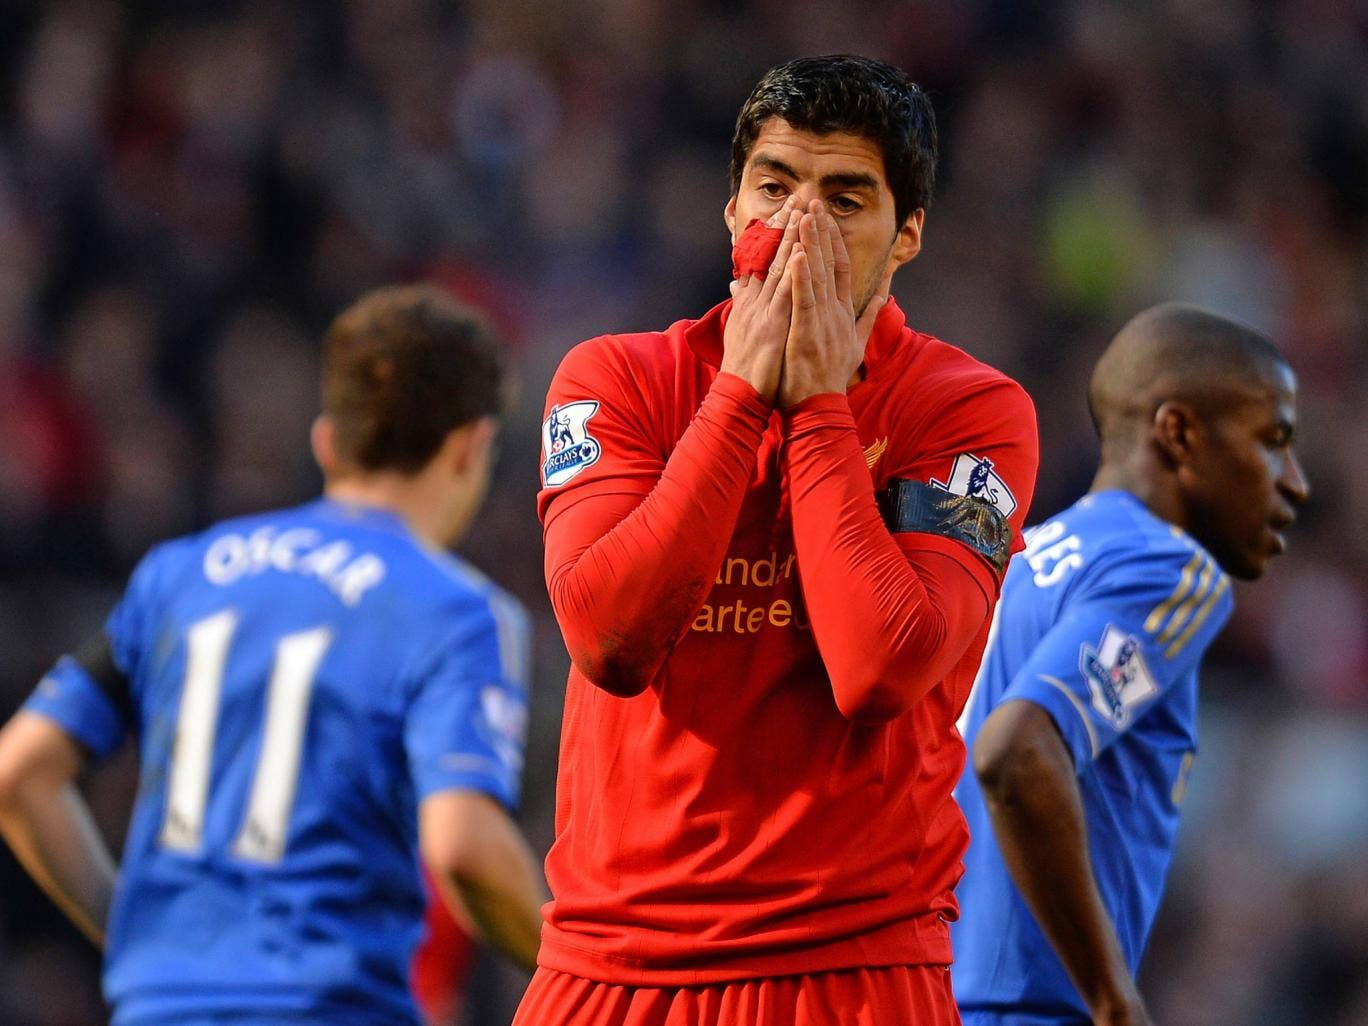 Luis Suarez pictured in the 2-2 draw between Liverpool and Chelsea